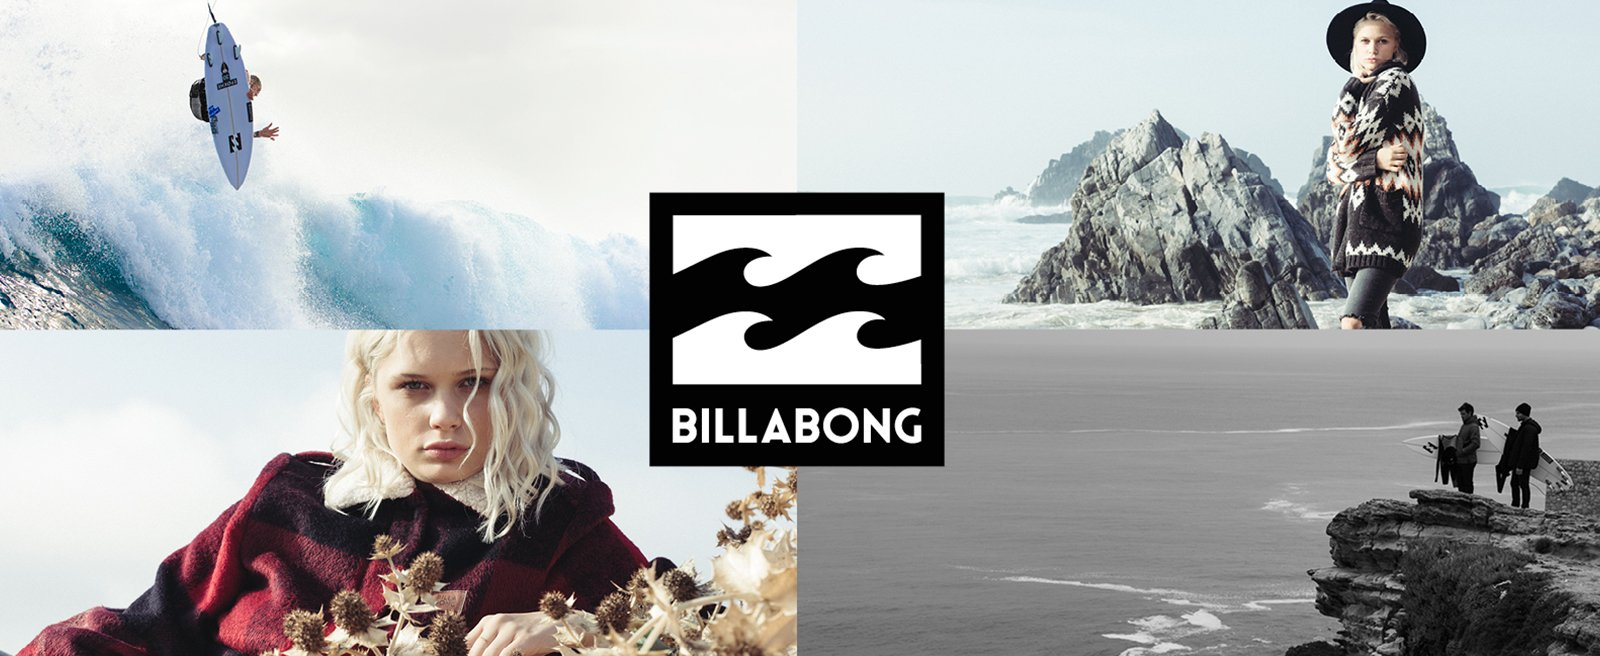 Boutique Billabong - Honfleur Normandy Outlet